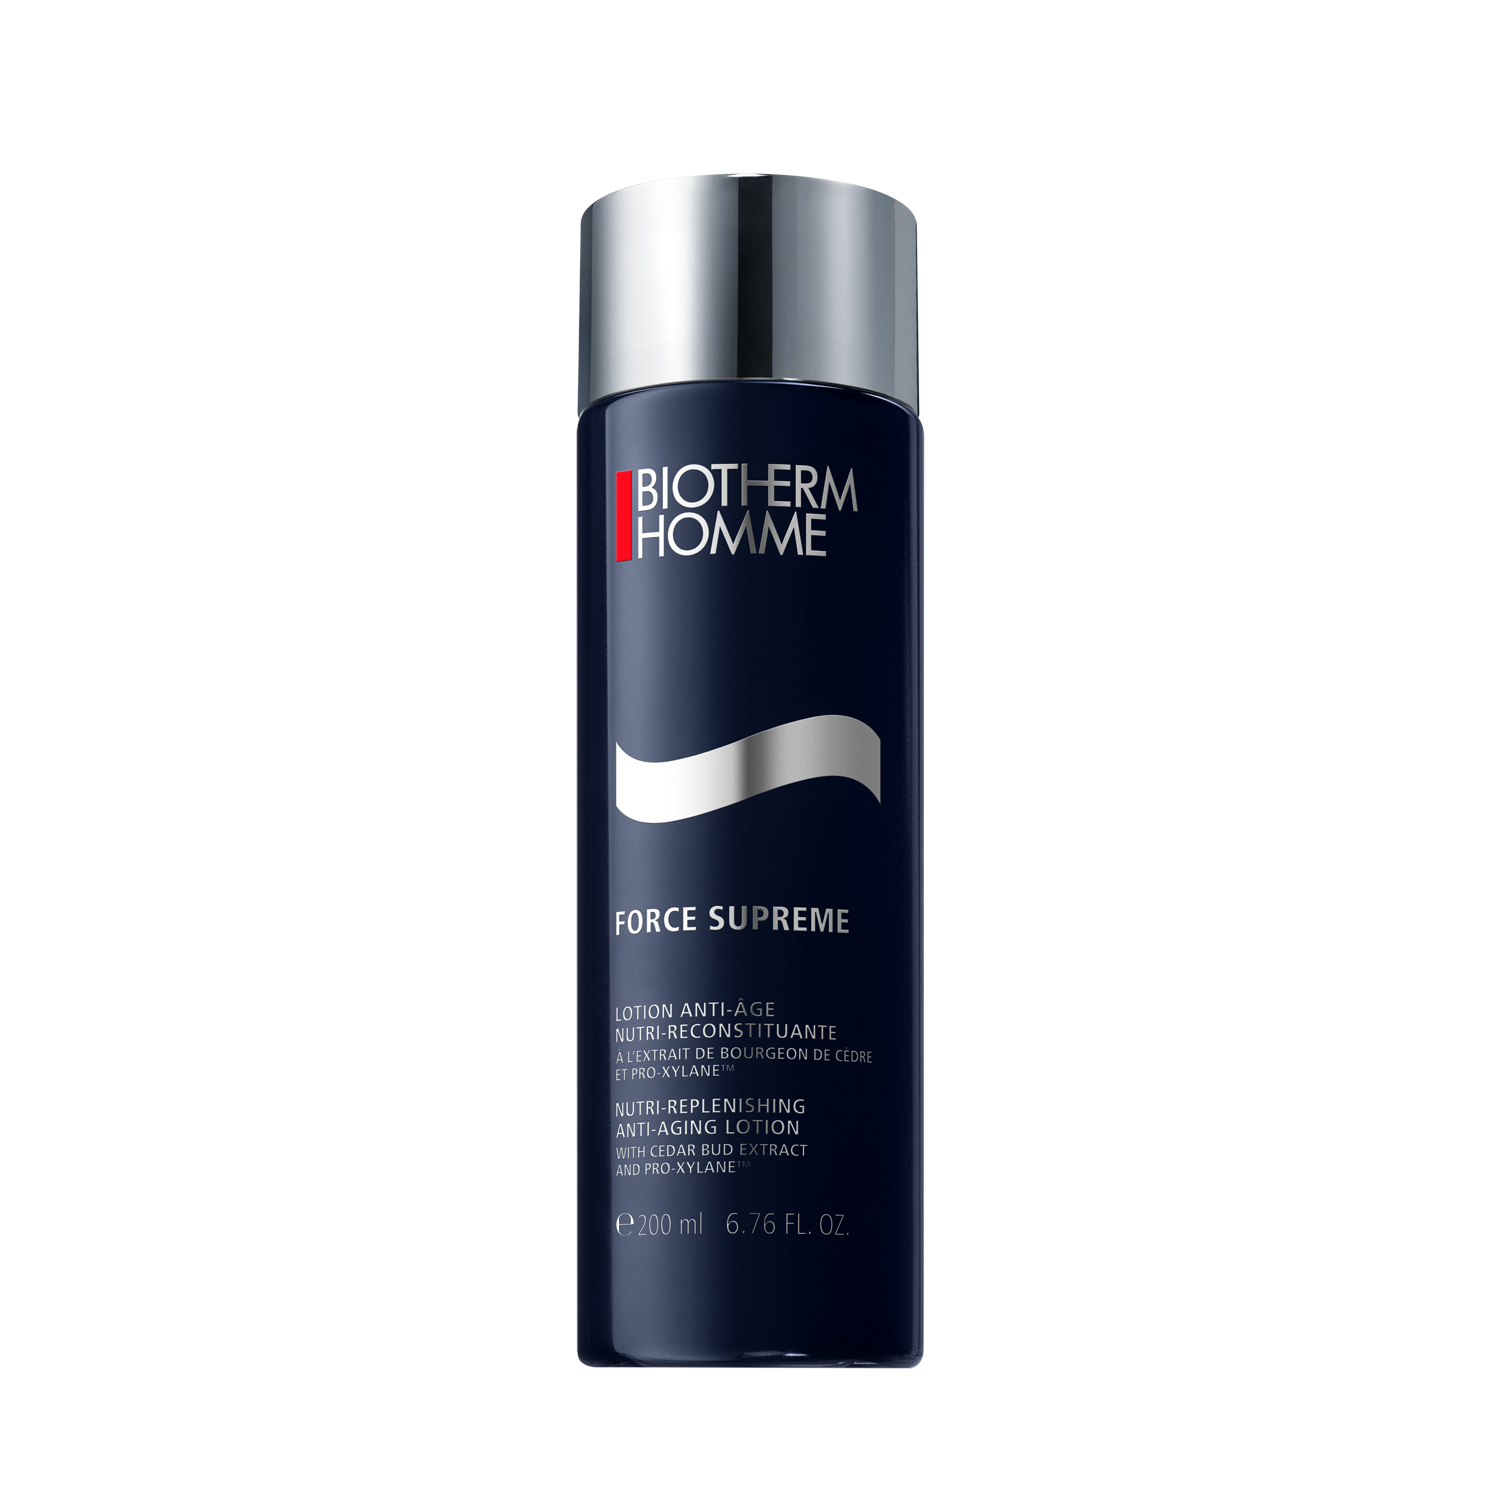 FORCE SUPREME NUTRI-REPLENISHING ANTI-AGING LOTION